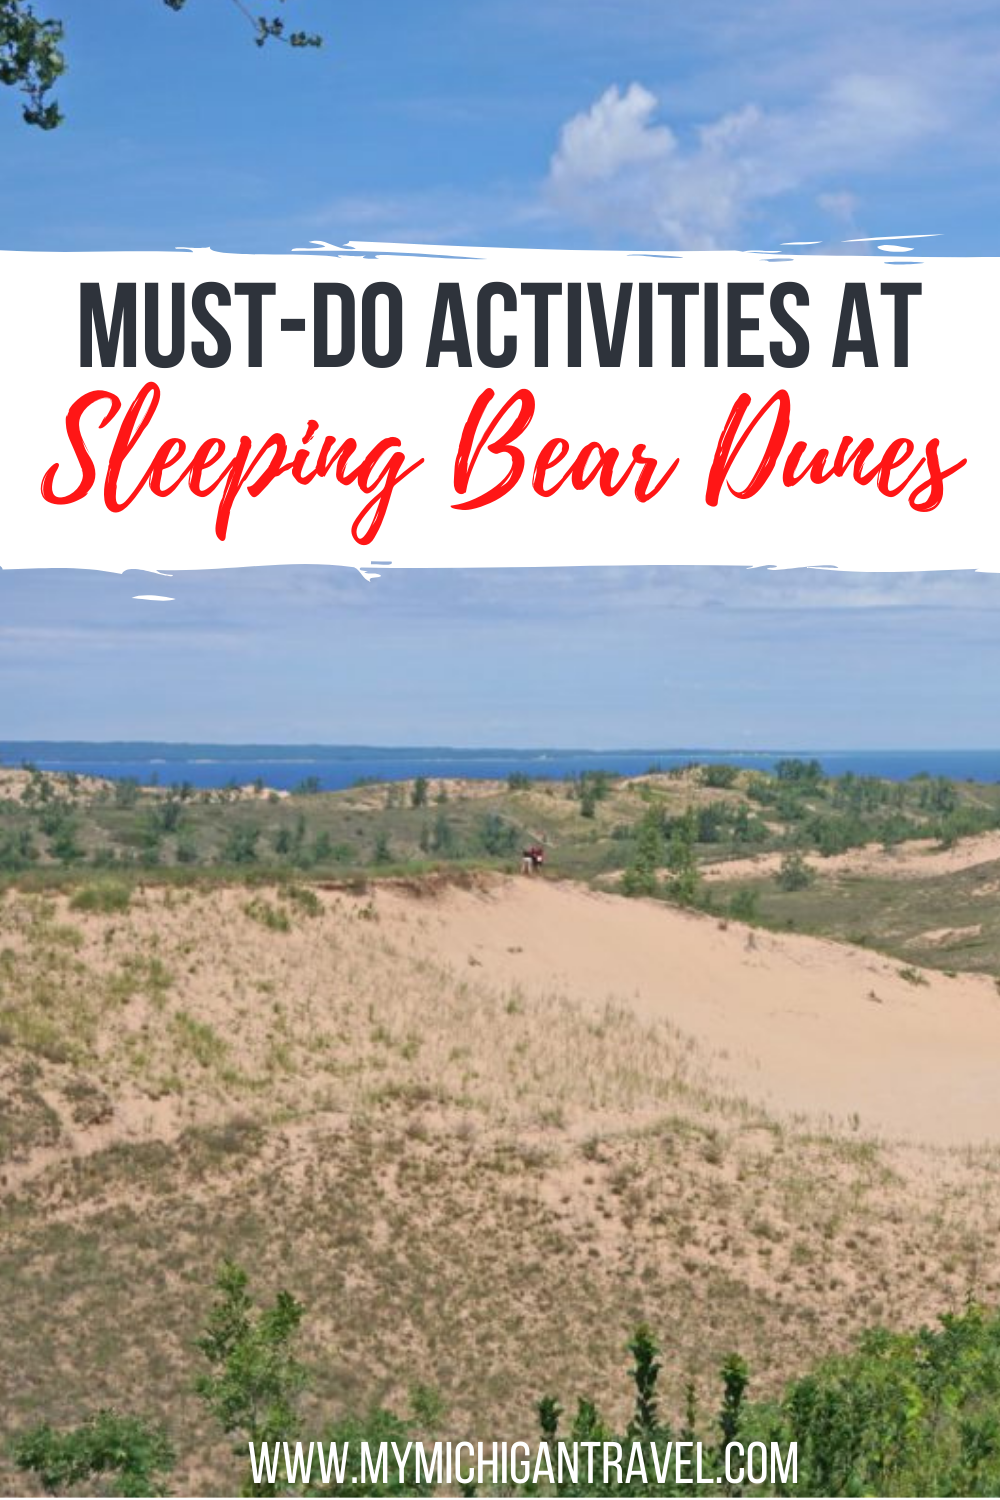 """Photo of sand dunes covered with scrub grass and text overlay reading """"Must-do activities at Sleeping Bear Dunes"""""""